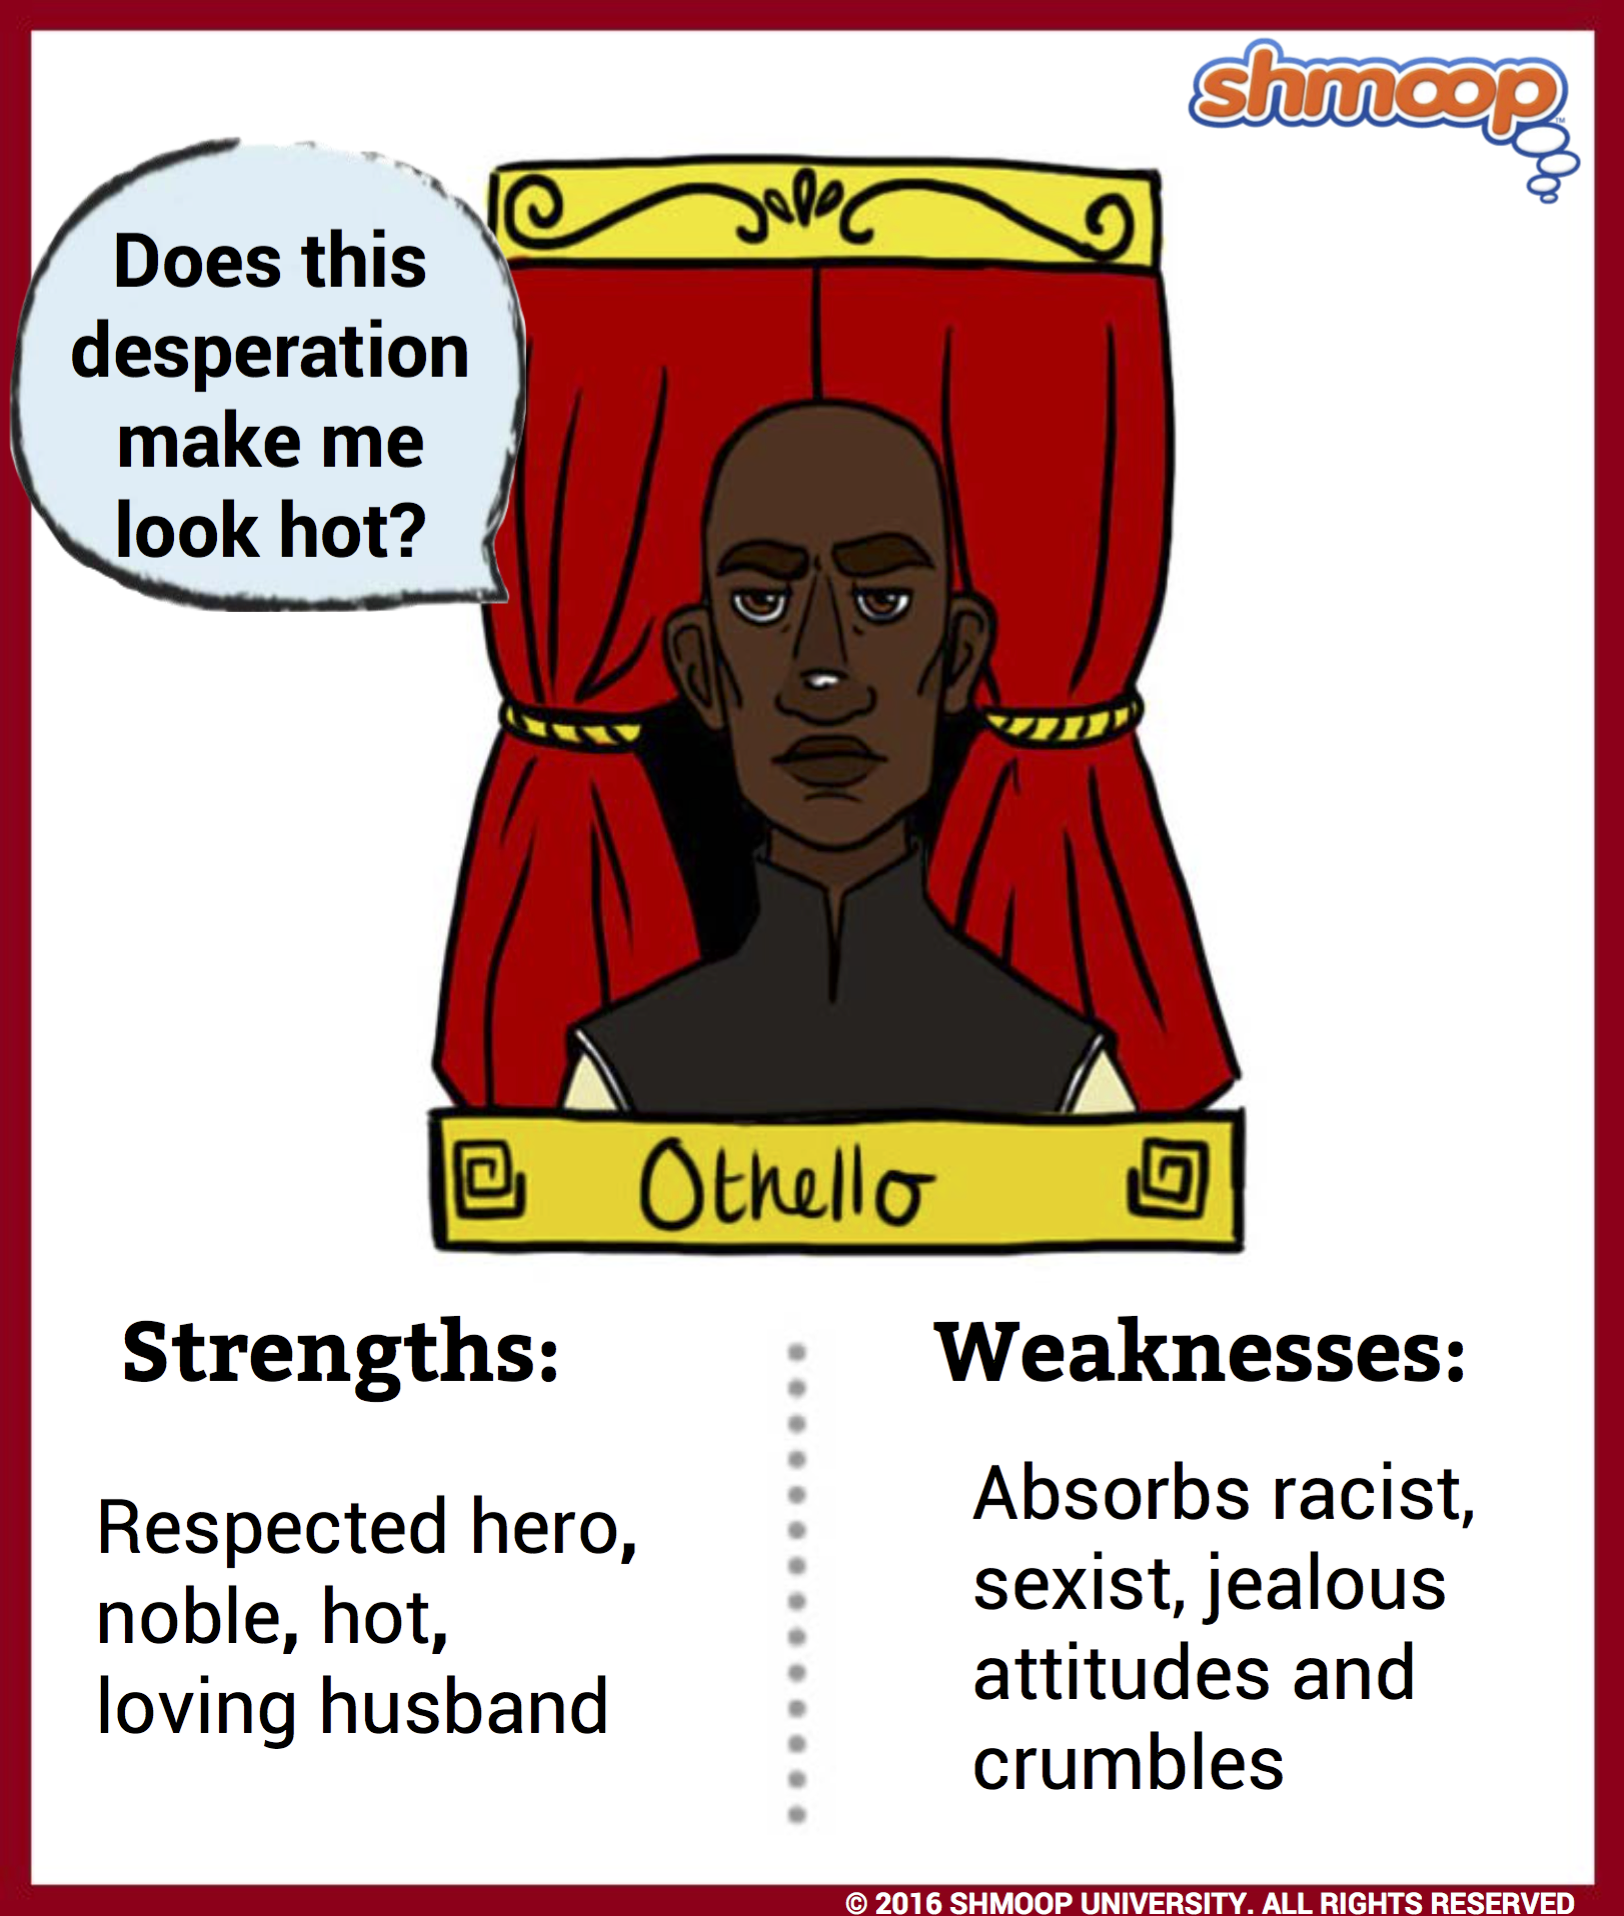 essay honesty characters of othello